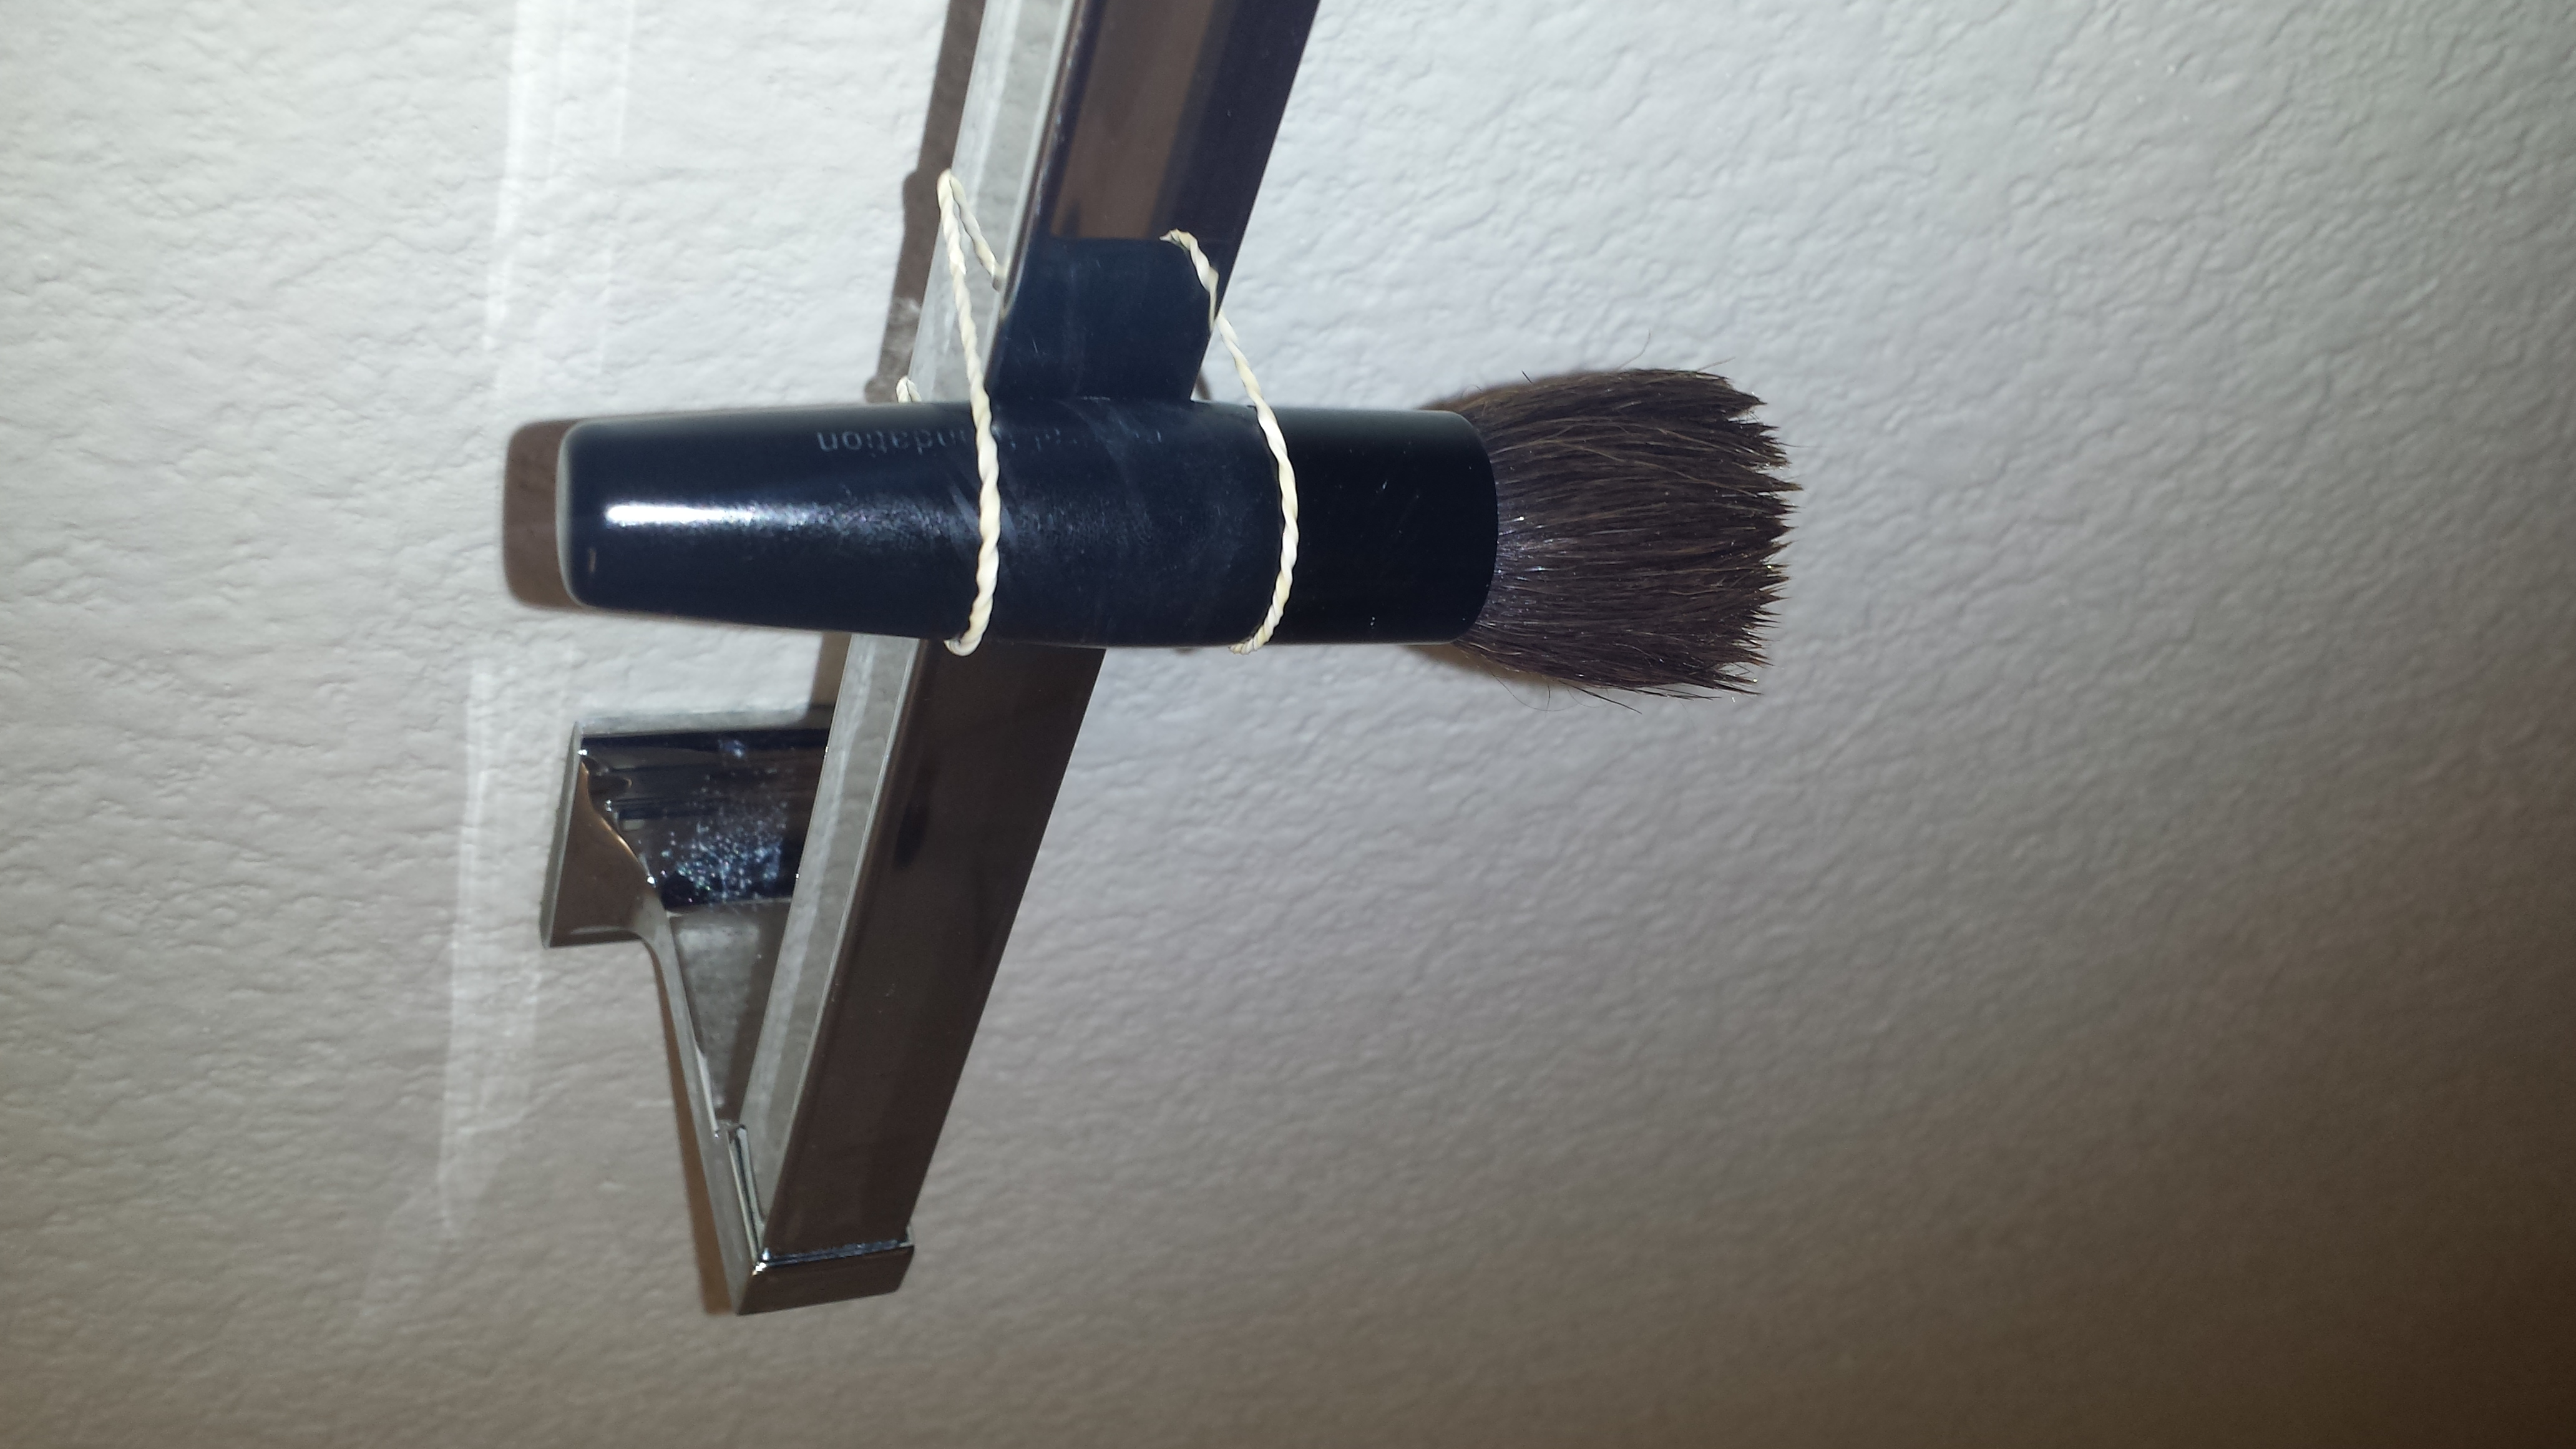 and then hang it on the towel holder with your hair tie facing down p.s. i recomment doing this at night so that in the morning all your brushes are dry